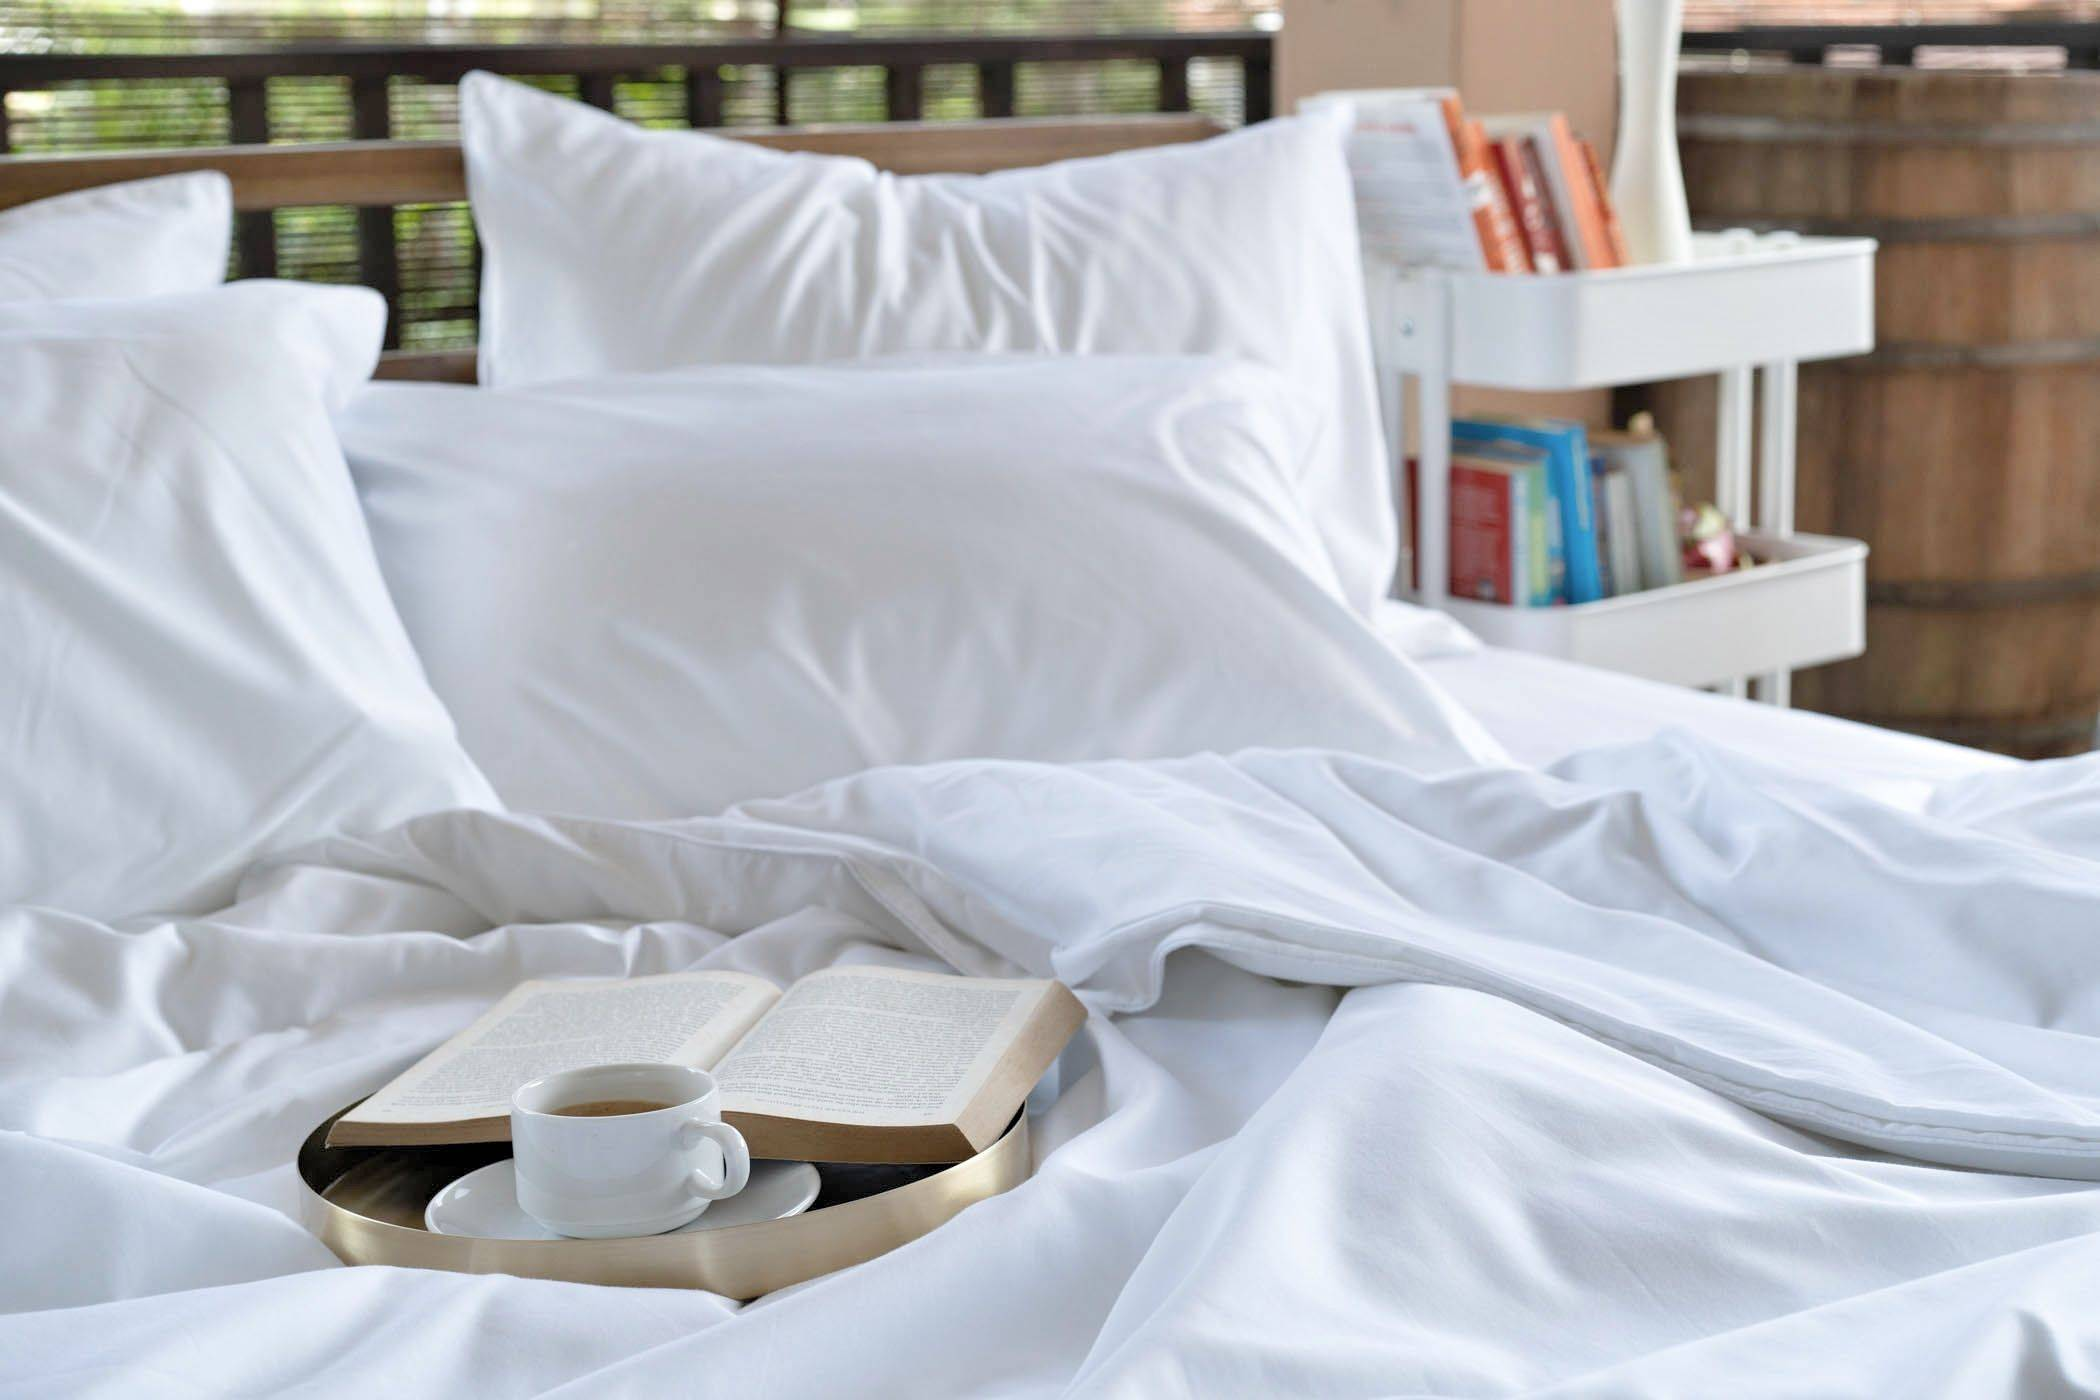 Featuring Weavve's Cloud White Cotton Deluxe Set with 1 fitted sheet, 1 duvet cover, 4 pillow cases and 2 bolster cases, with a tray with a coffee mug and book placed on top of it